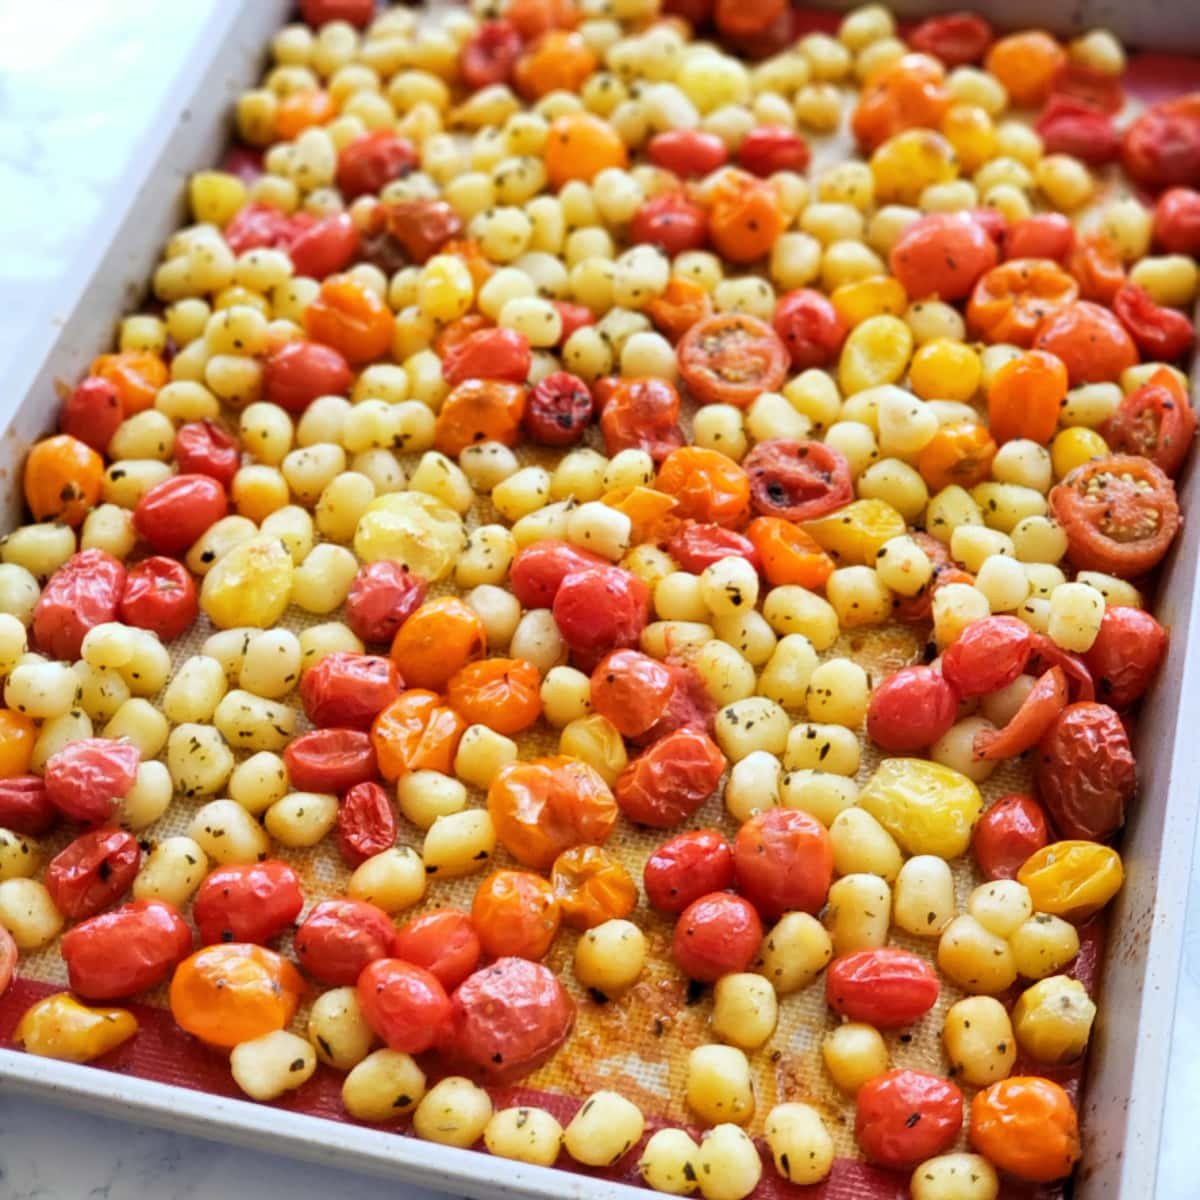 Tomatoes and gnocchi roasted straight from the oven